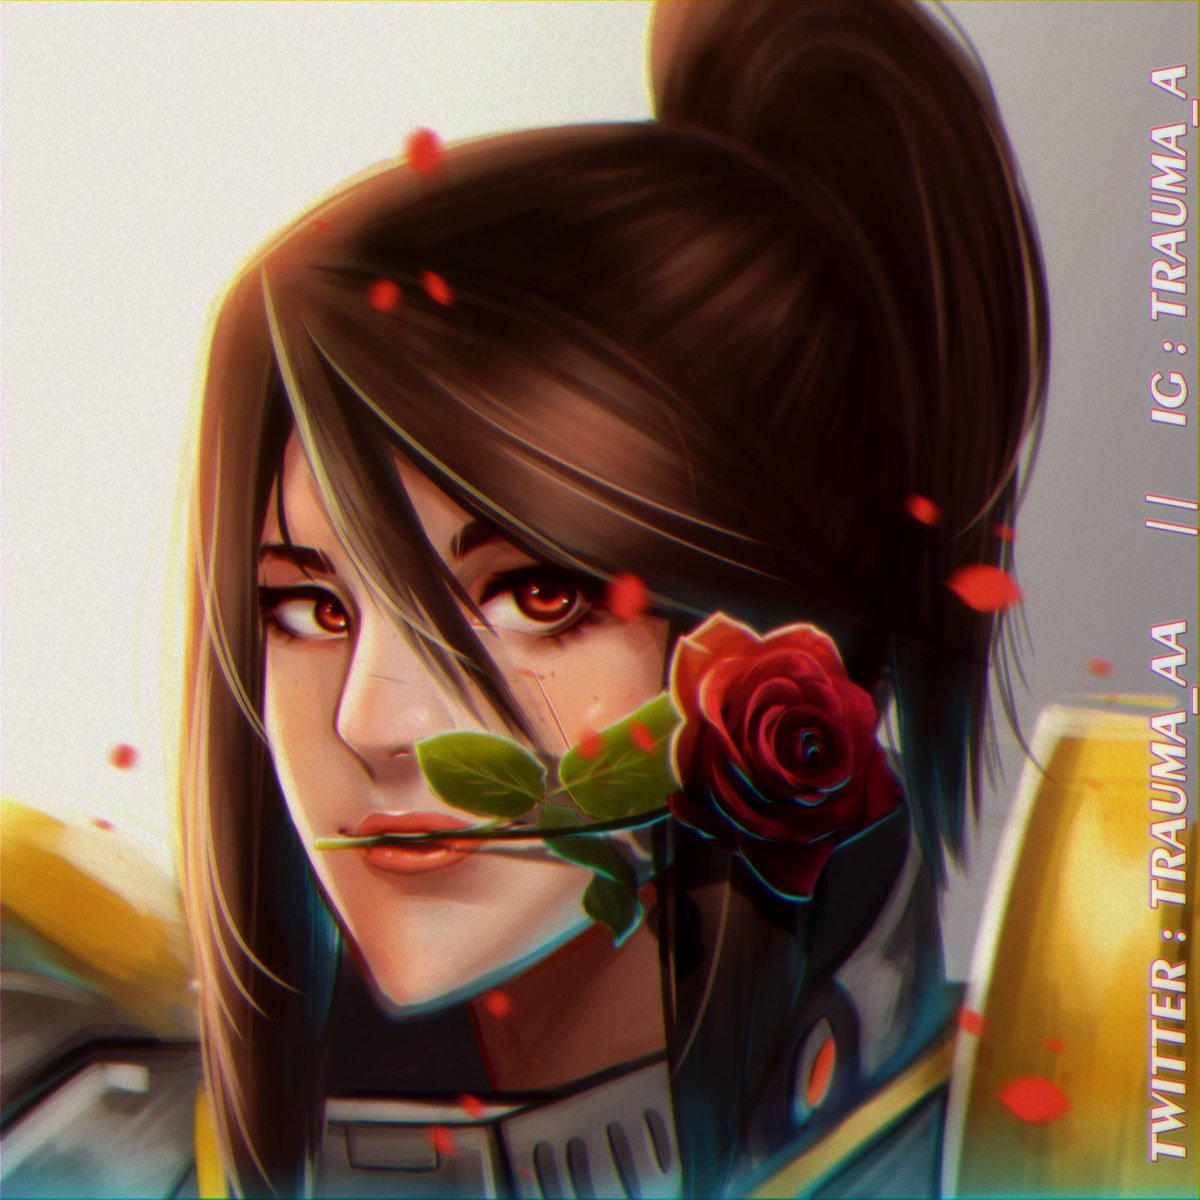 &quot;You were expecting Fernando ?&quot; &quot;But it was me, FERNANDA!&quot;  @PaladinsGame @HiRezAlyssa @HirezChris @Pixiekittie_ #paladins #paladinsgame #paladins @RayndayGaming   [Updated : added rose &amp; small quality tweak]<br>http://pic.twitter.com/U0cyXkvEUu